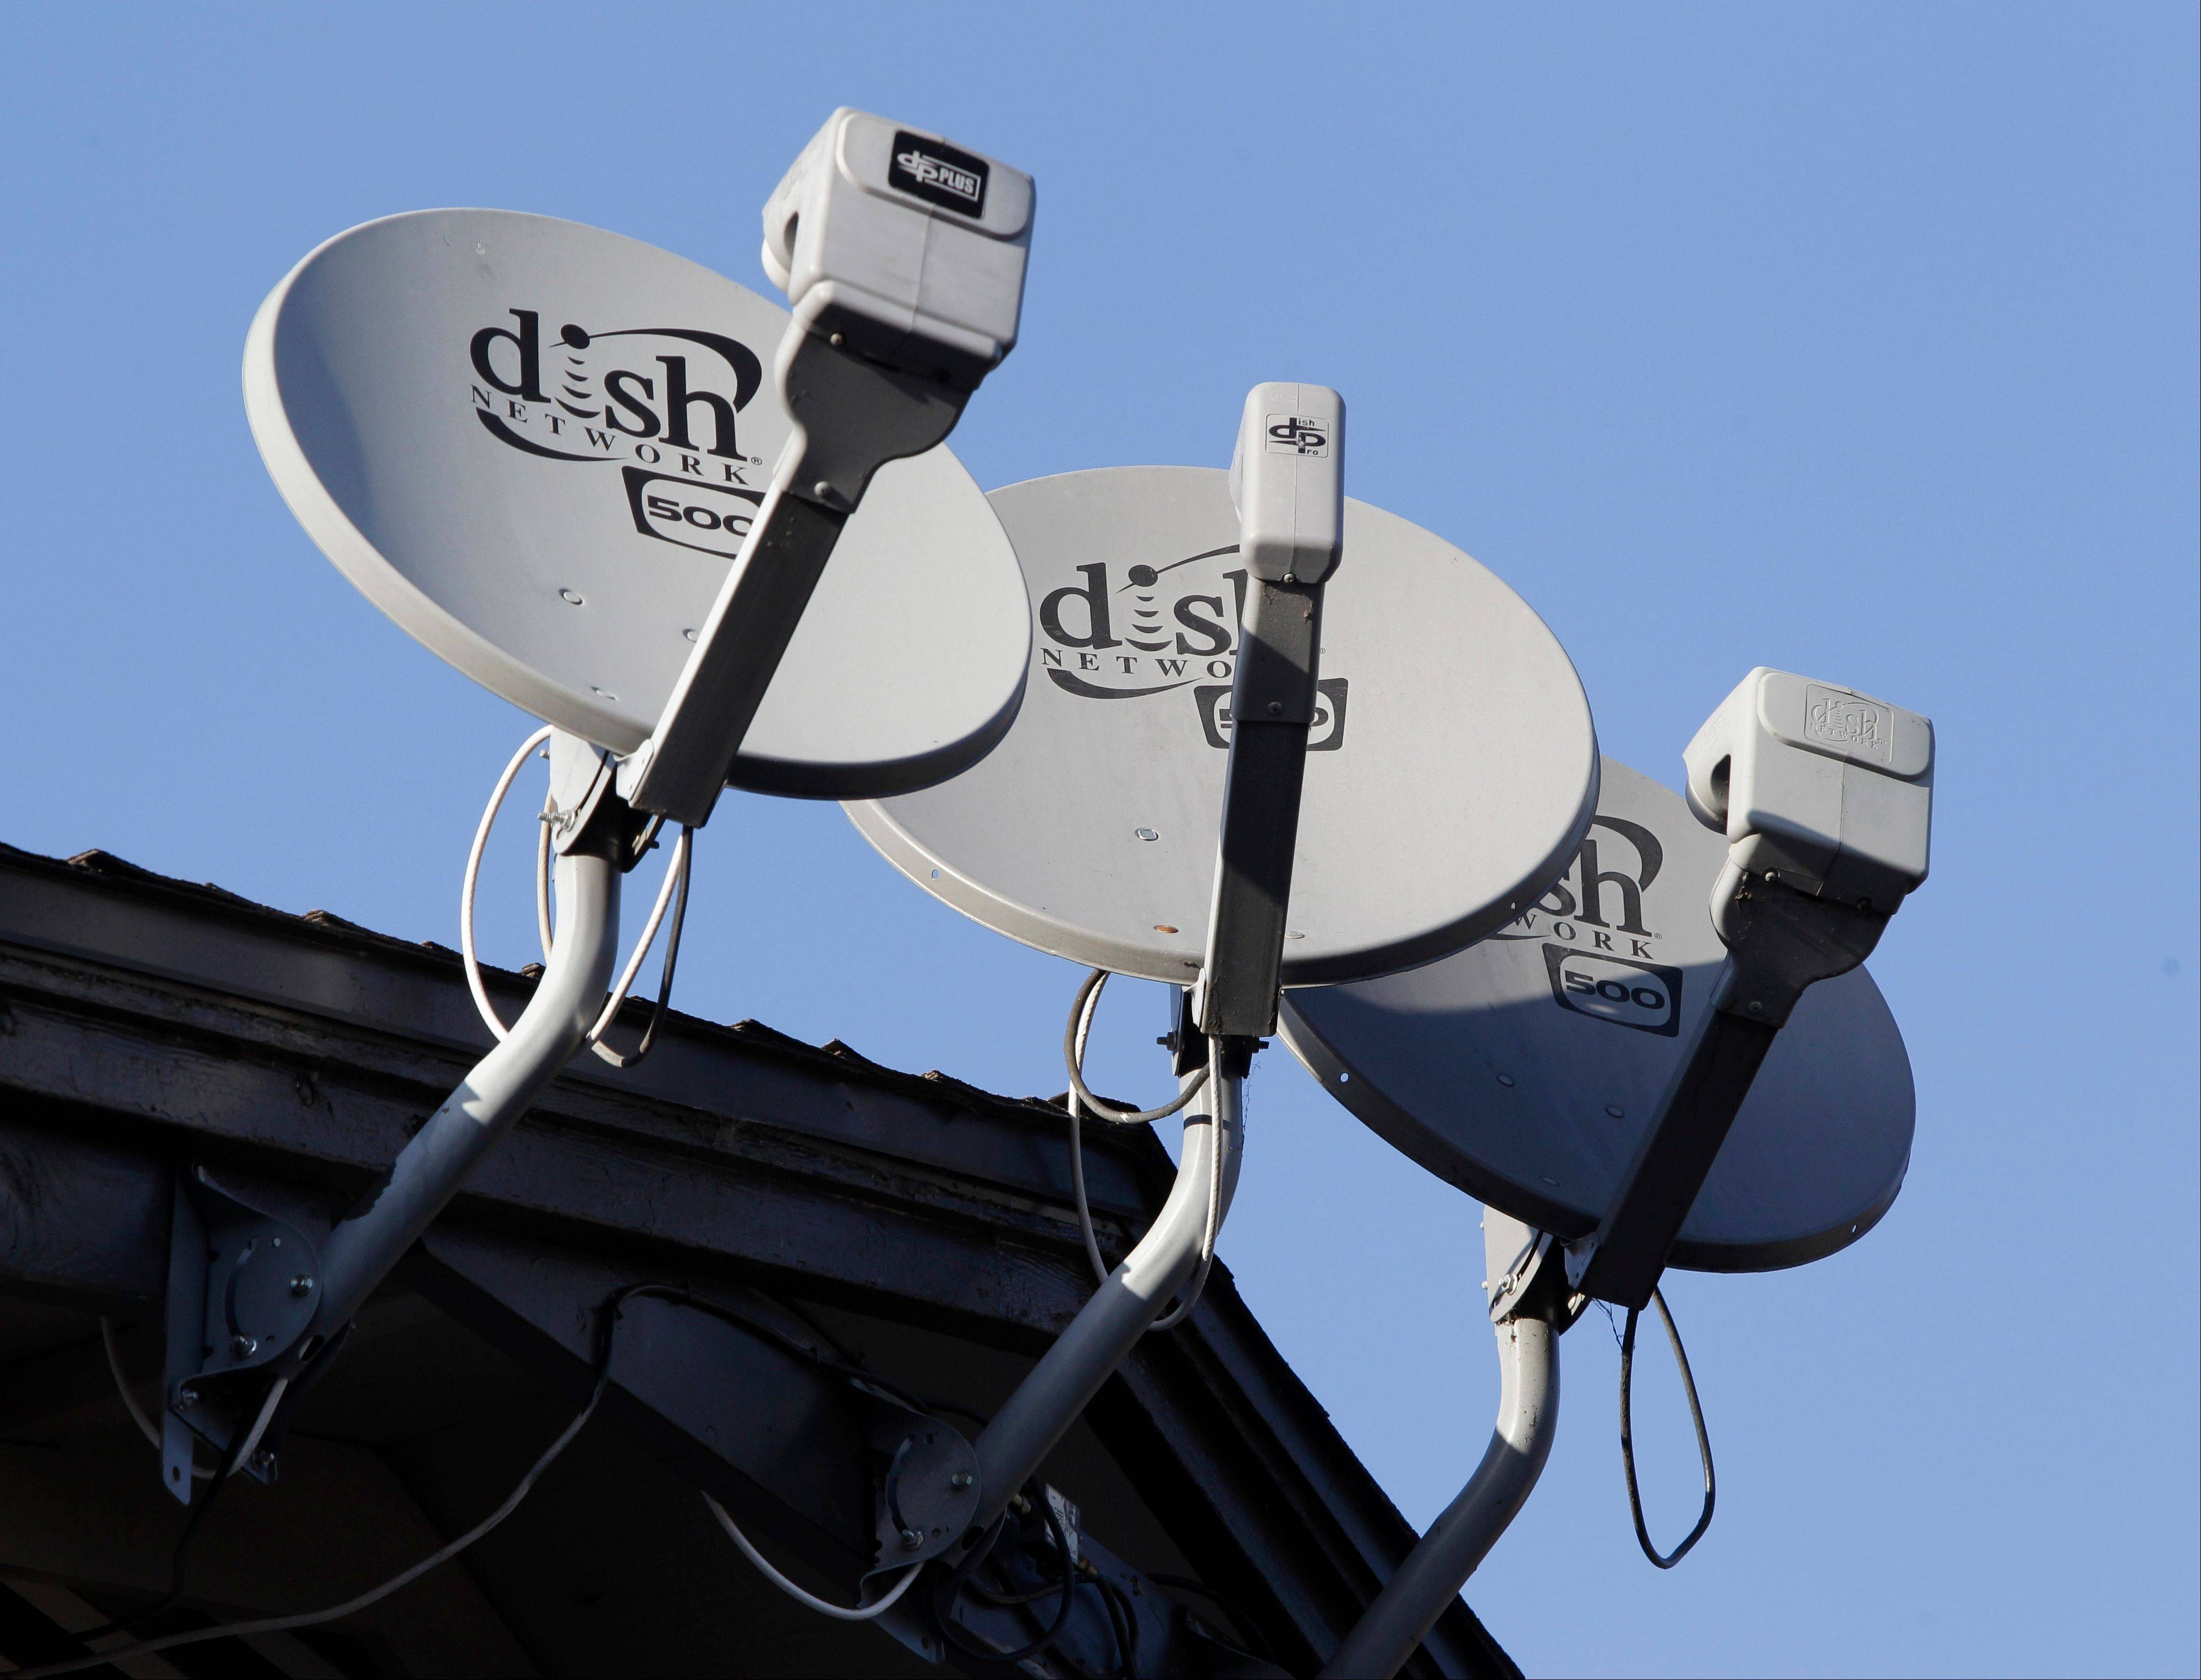 News Corp.'s Fox Broadcasting unit lost its bid to block Dish Network Corp.'s ad-free primetime television service and its so-called AutoHop features before a copyright-infringement lawsuit has been resolved.